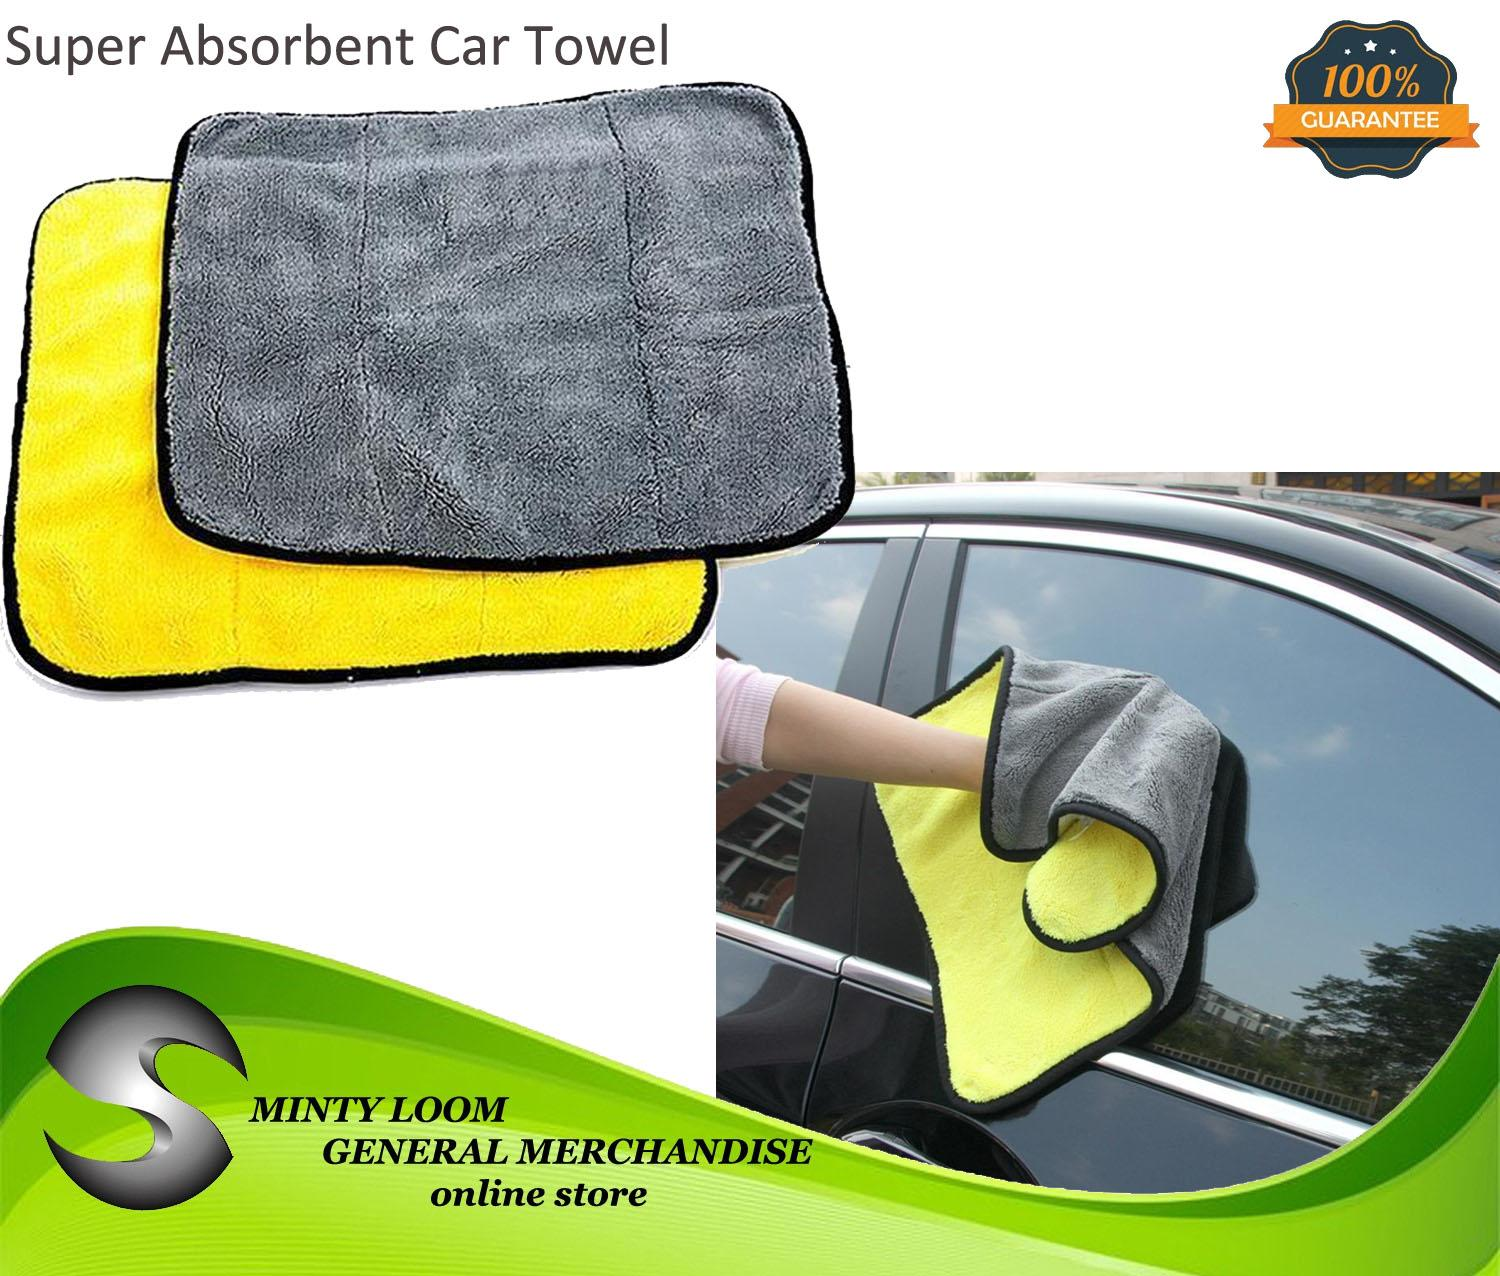 Yellow-Gray 800gsm Ultra Thick Plush Microfiber Car Cleaning Towel Buffing Cloths Super Absorbent Drying Auto Detailing Towel image on snachetto.com